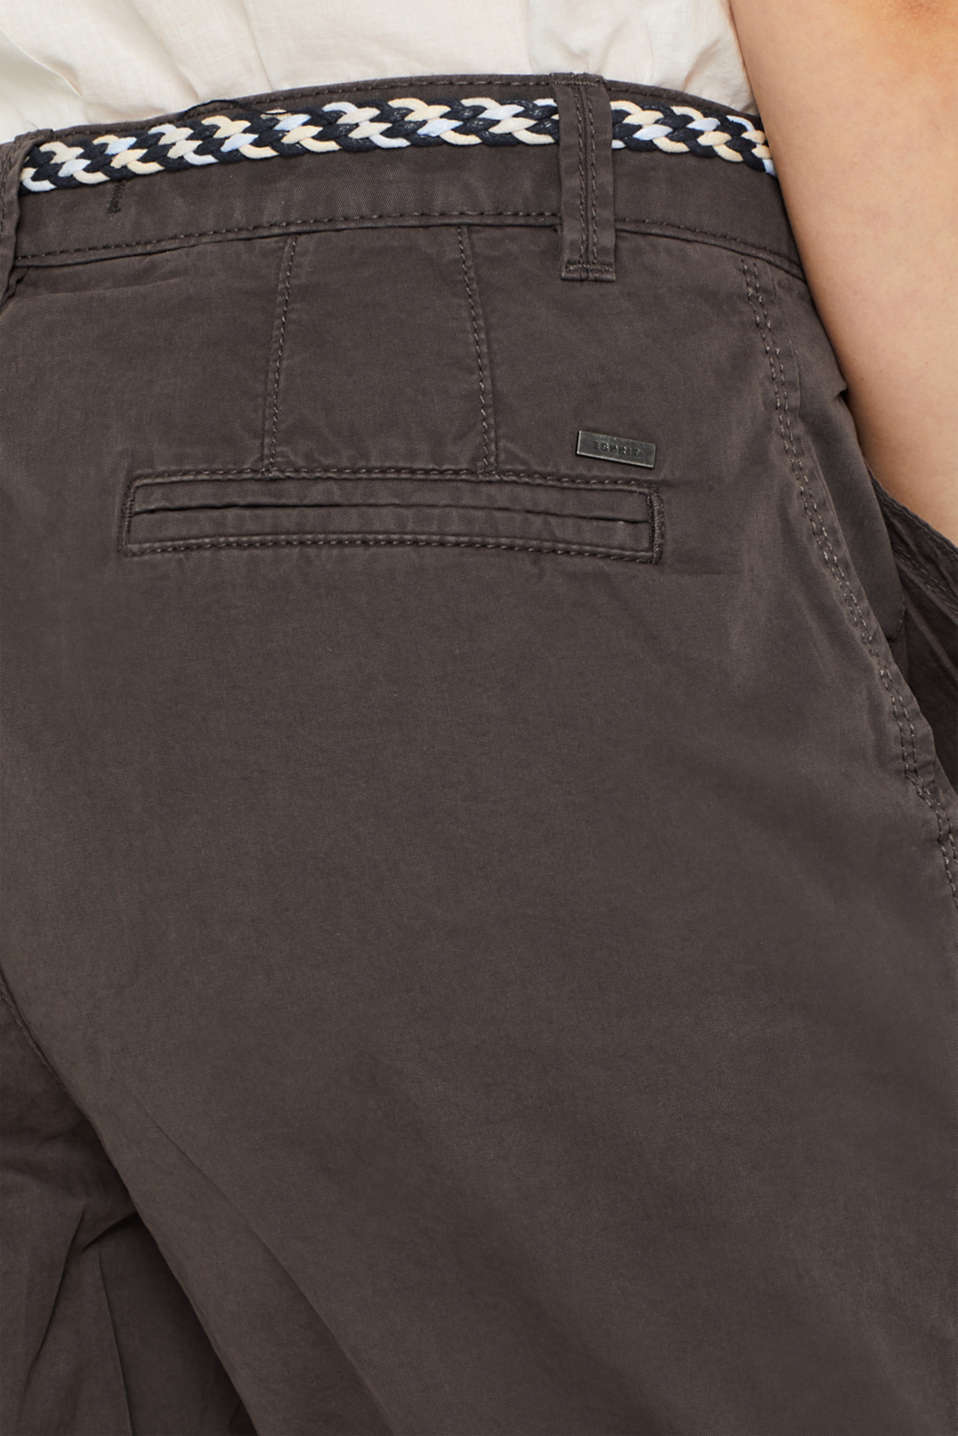 Shorts in a garment-washed look, 100% cotton, DARK GREY, detail image number 5